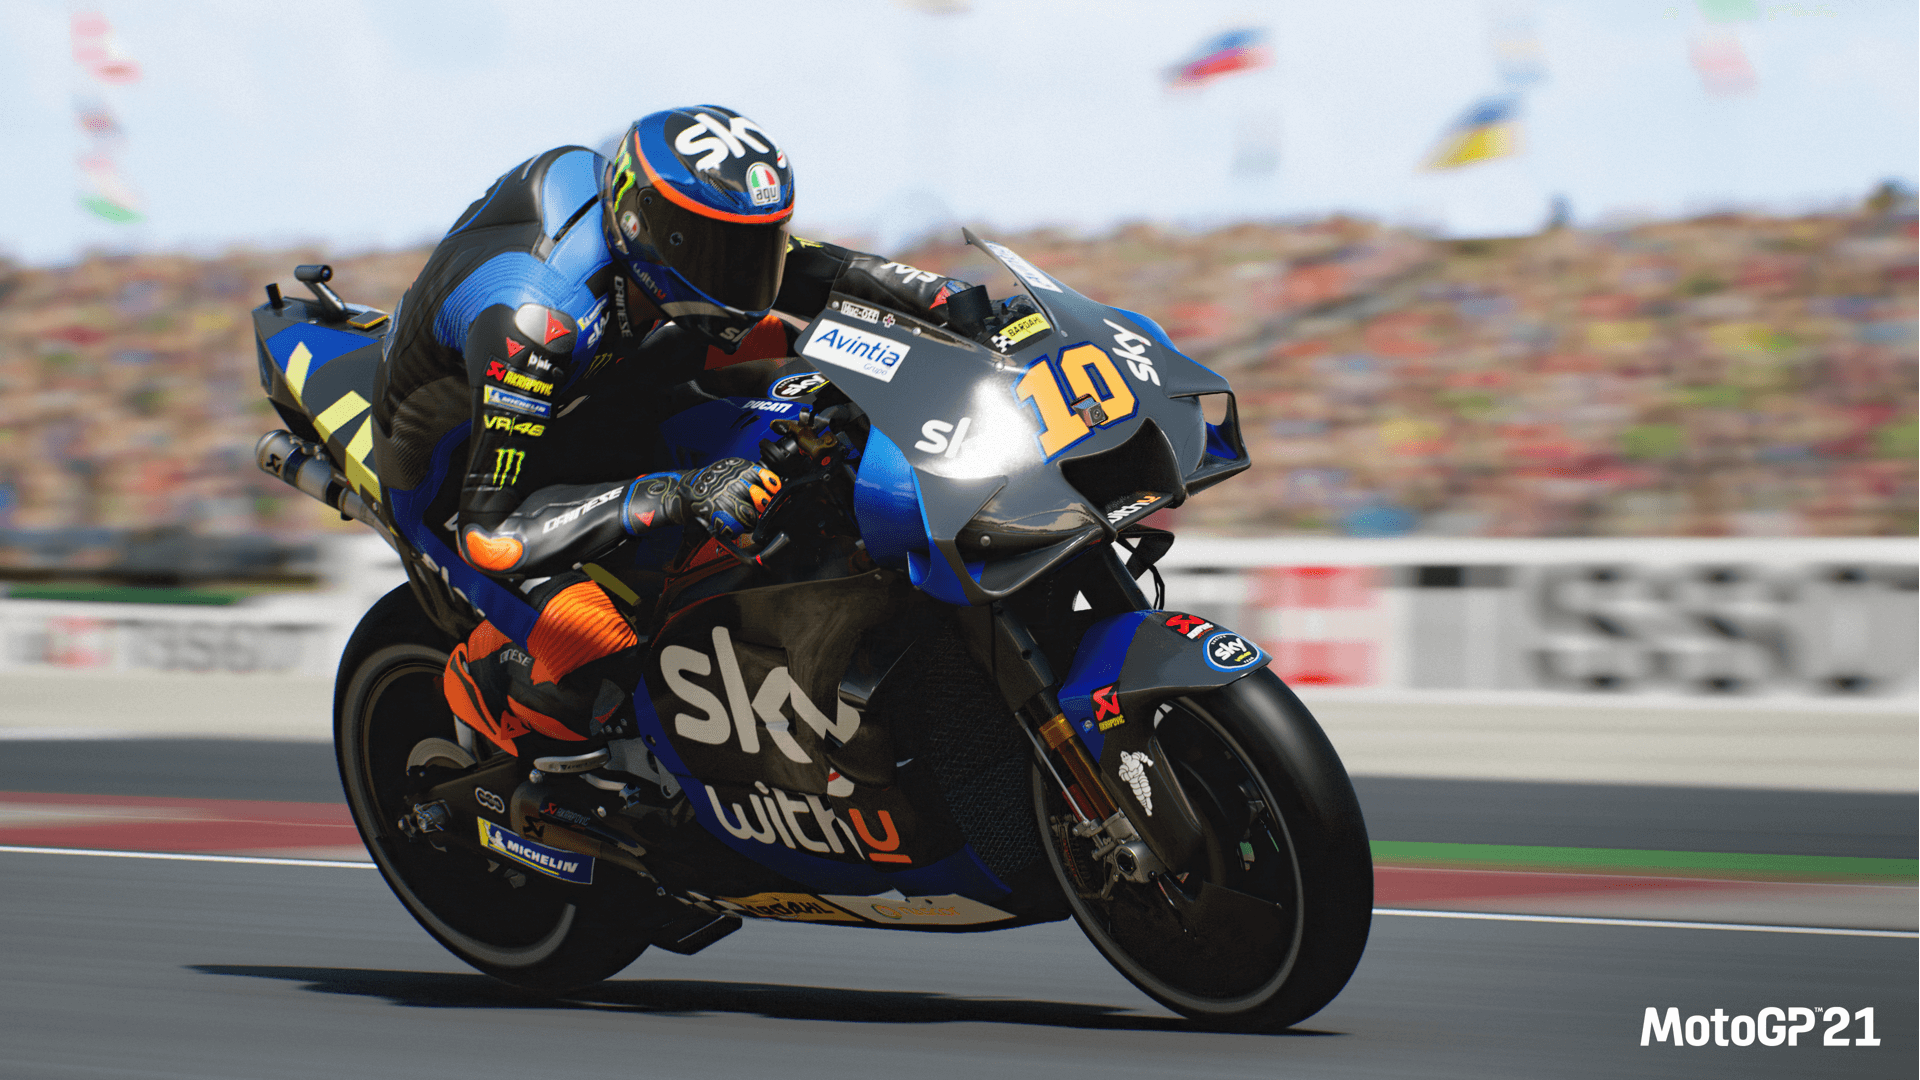 Moto GP 21 Game Review: Getting Close with the Road